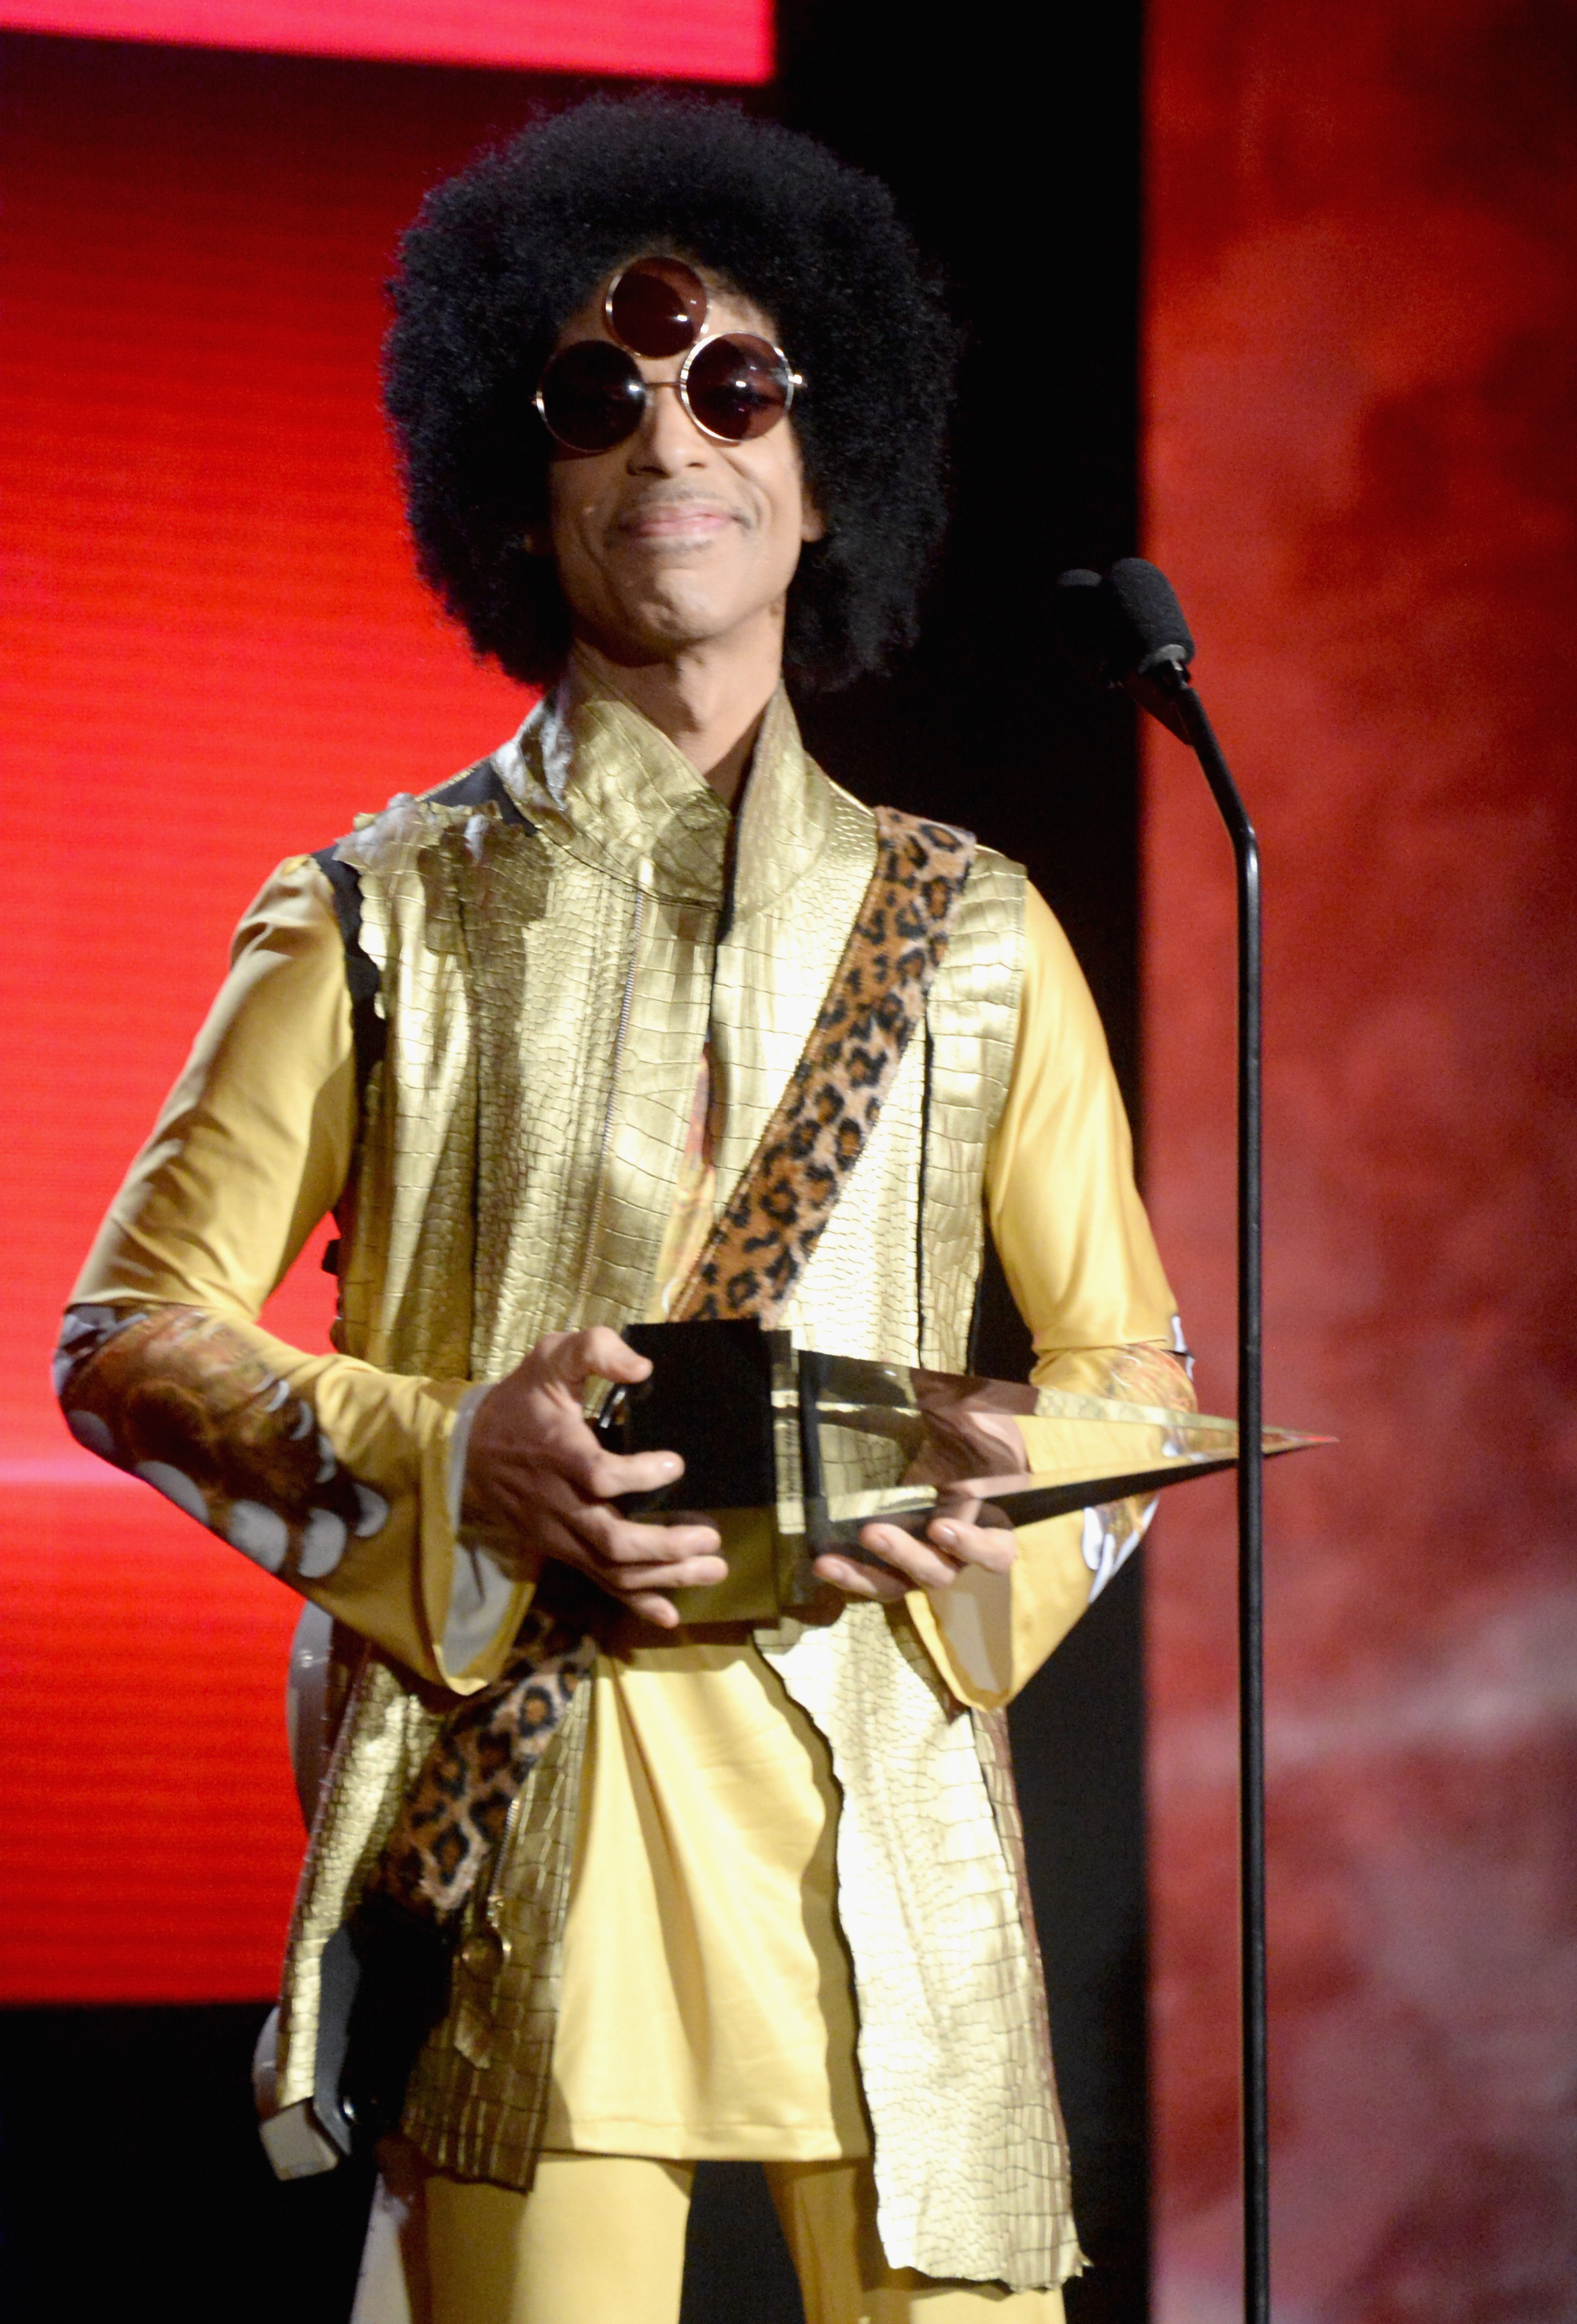 Prince during the 2015 American Music Awards on Nov. 22, 2015 in Los Angeles.